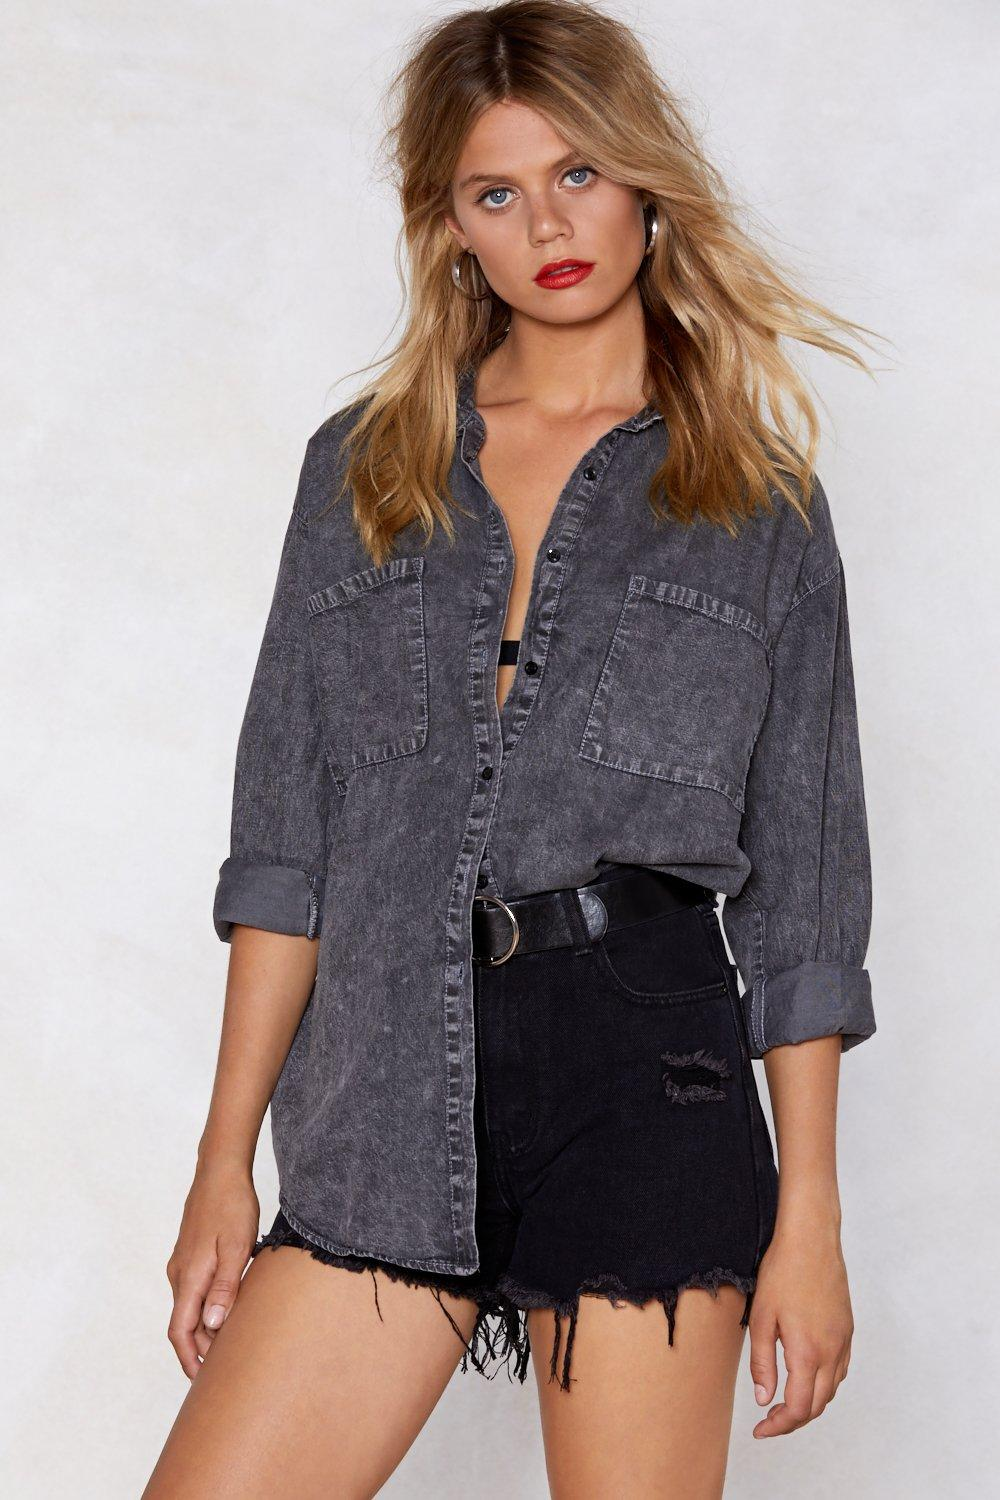 8f1d6ec2 That Doesn't Wash With Me Oversized Shirt | Shop Clothes at Nasty Gal!